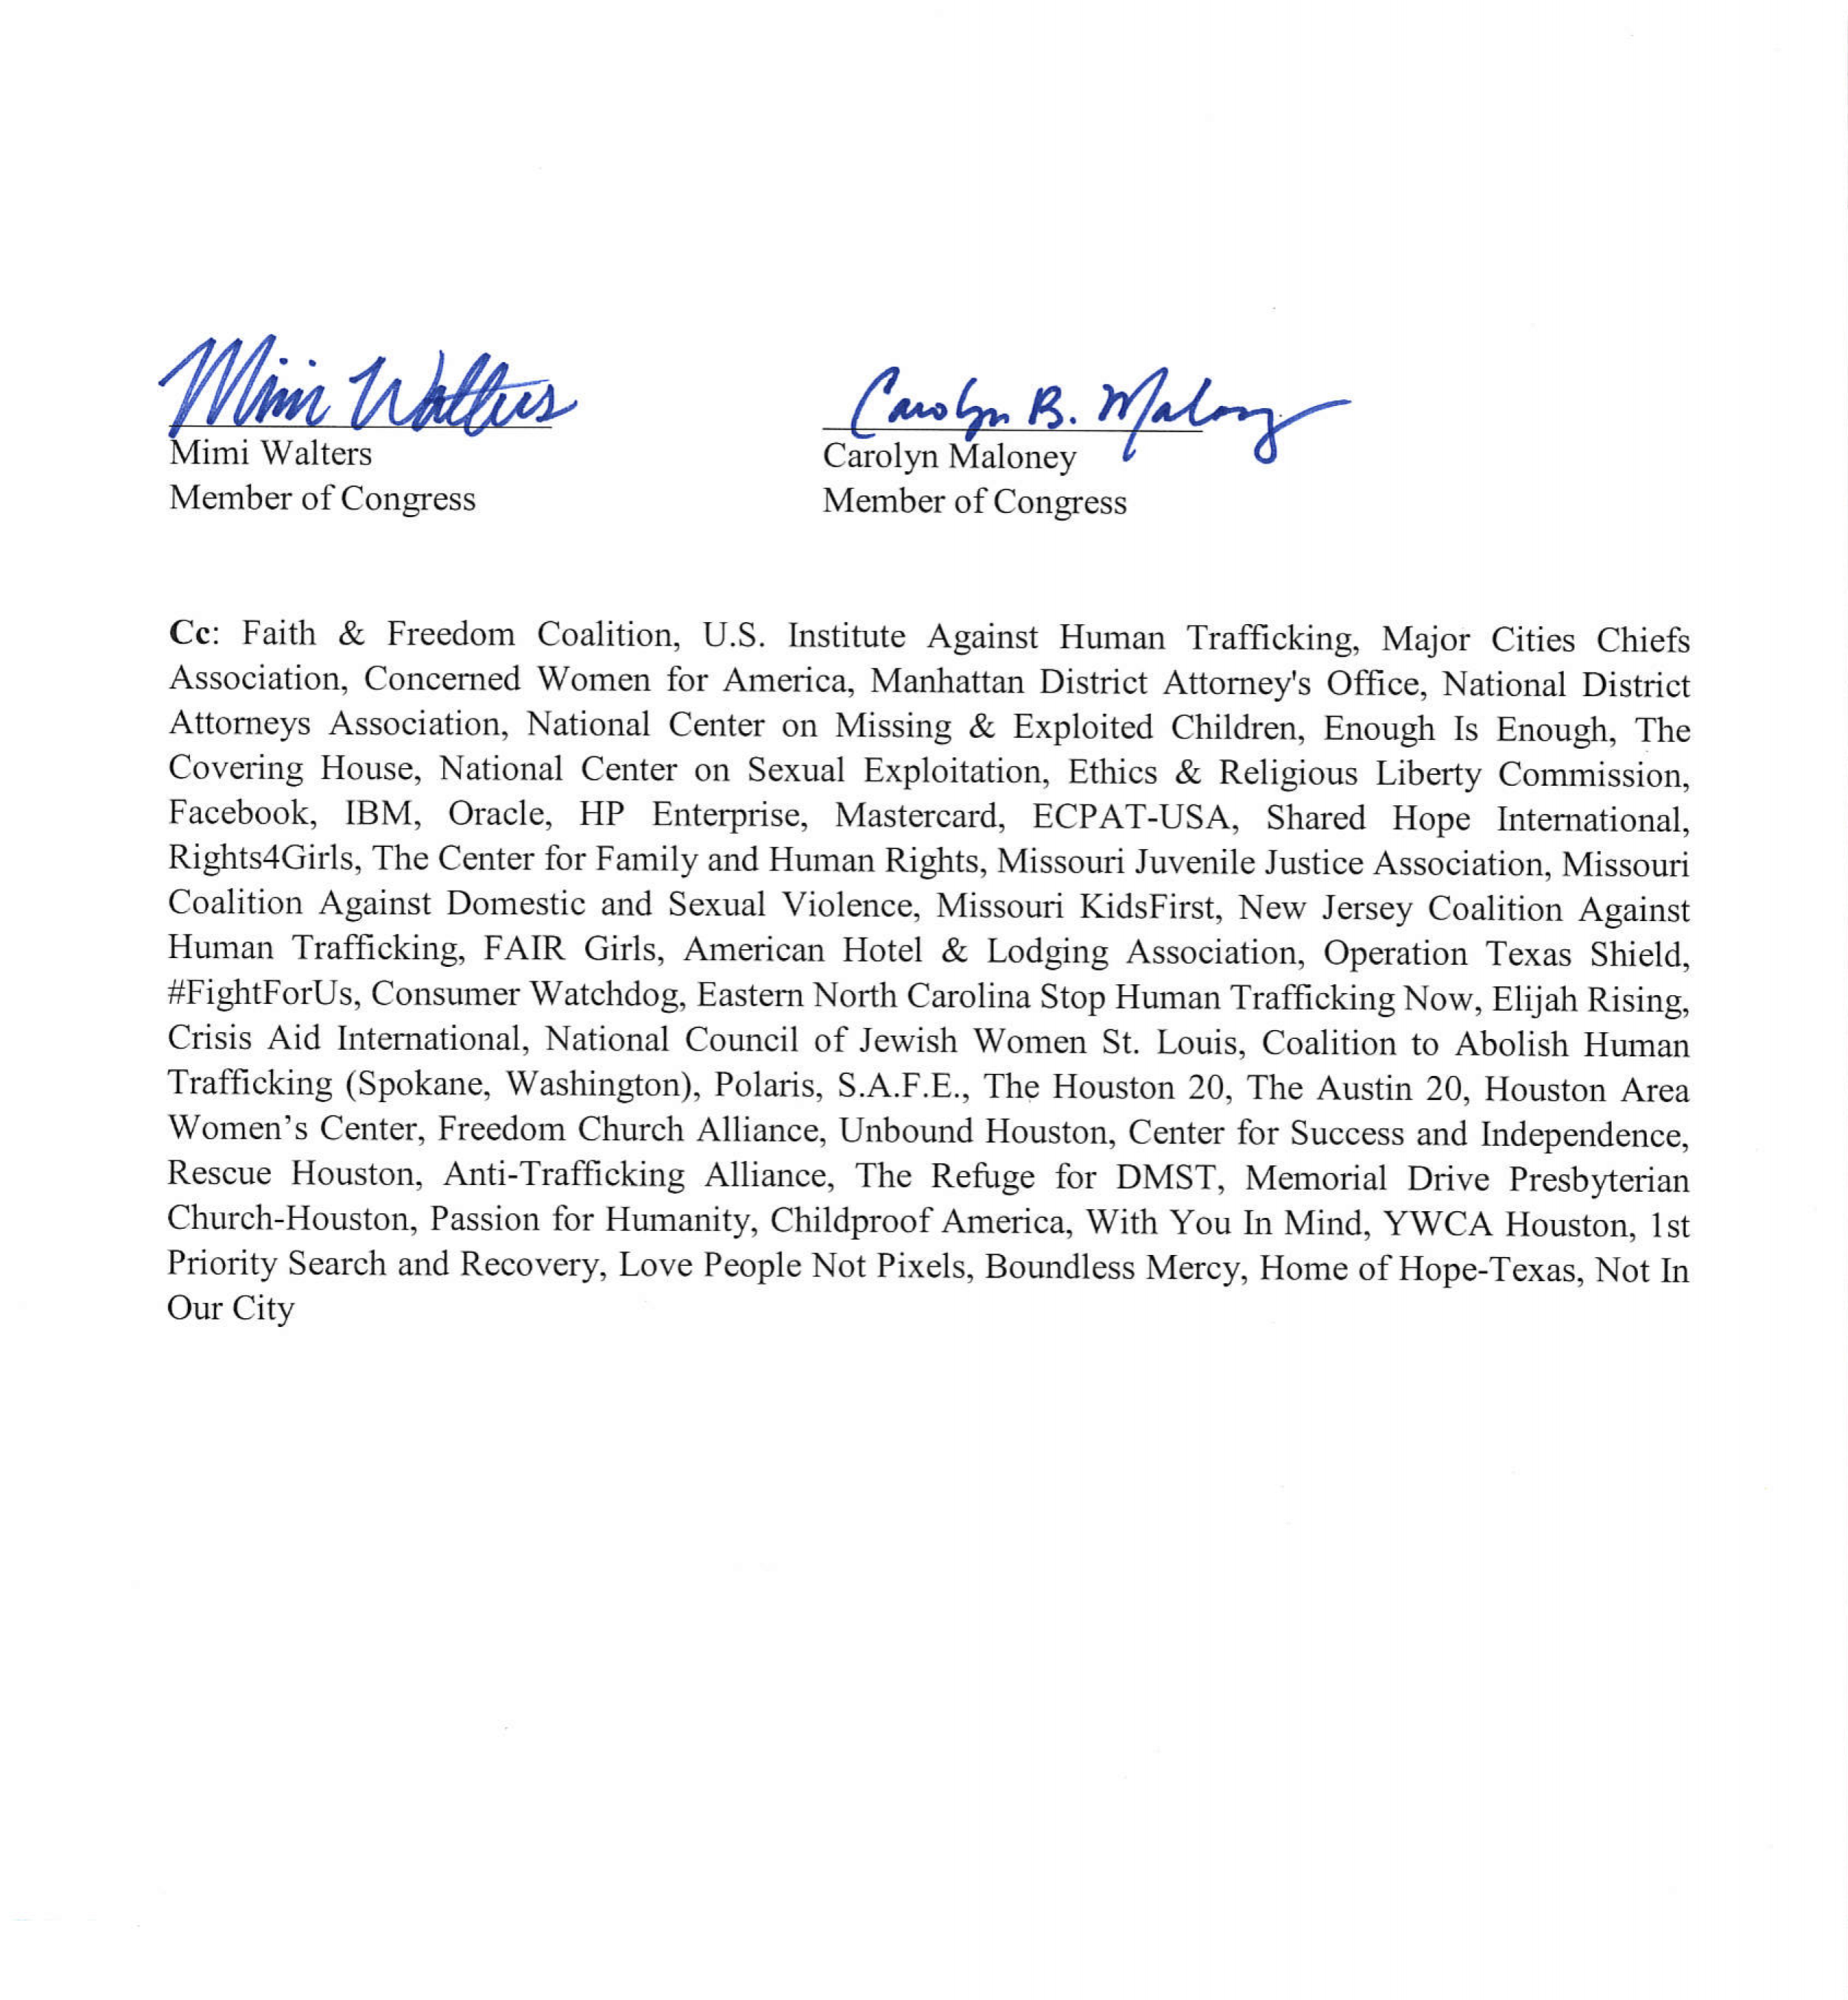 HR 1865 Thank You - Page 2.png